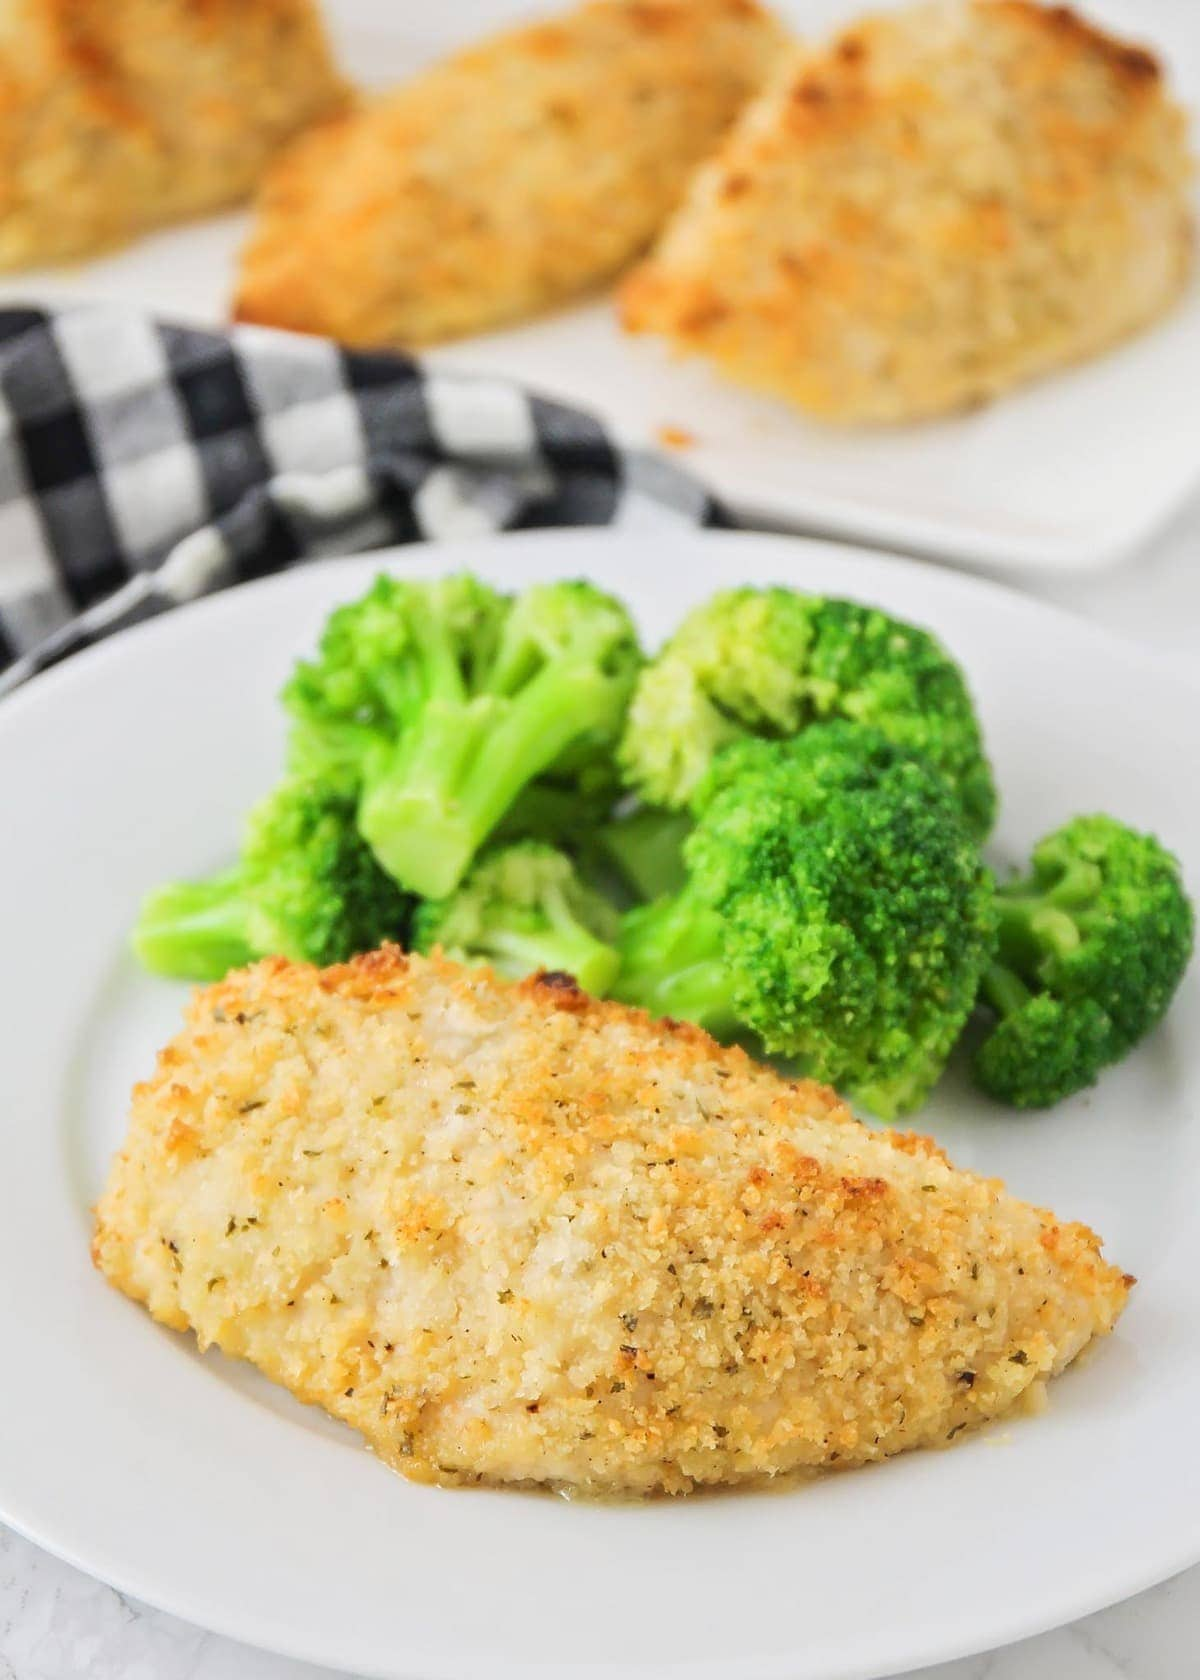 Crispy hidden valley ranch chicken on a plate with broccoli on the side